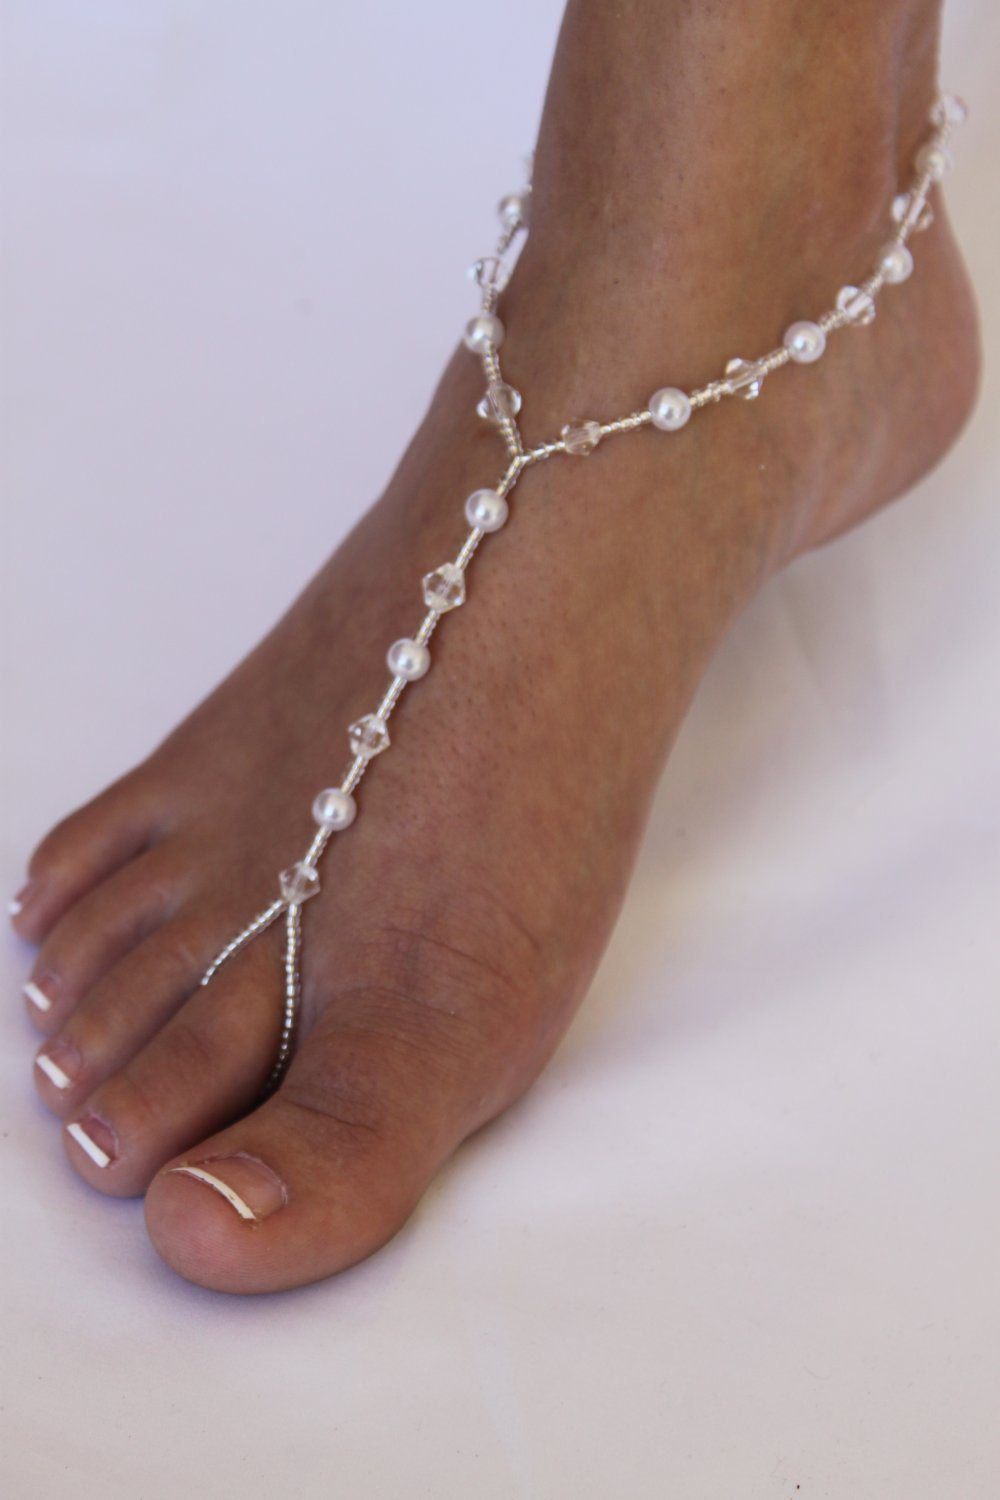 Classic Pearl and Crystal Barefoot Sandals Foot Jewelry